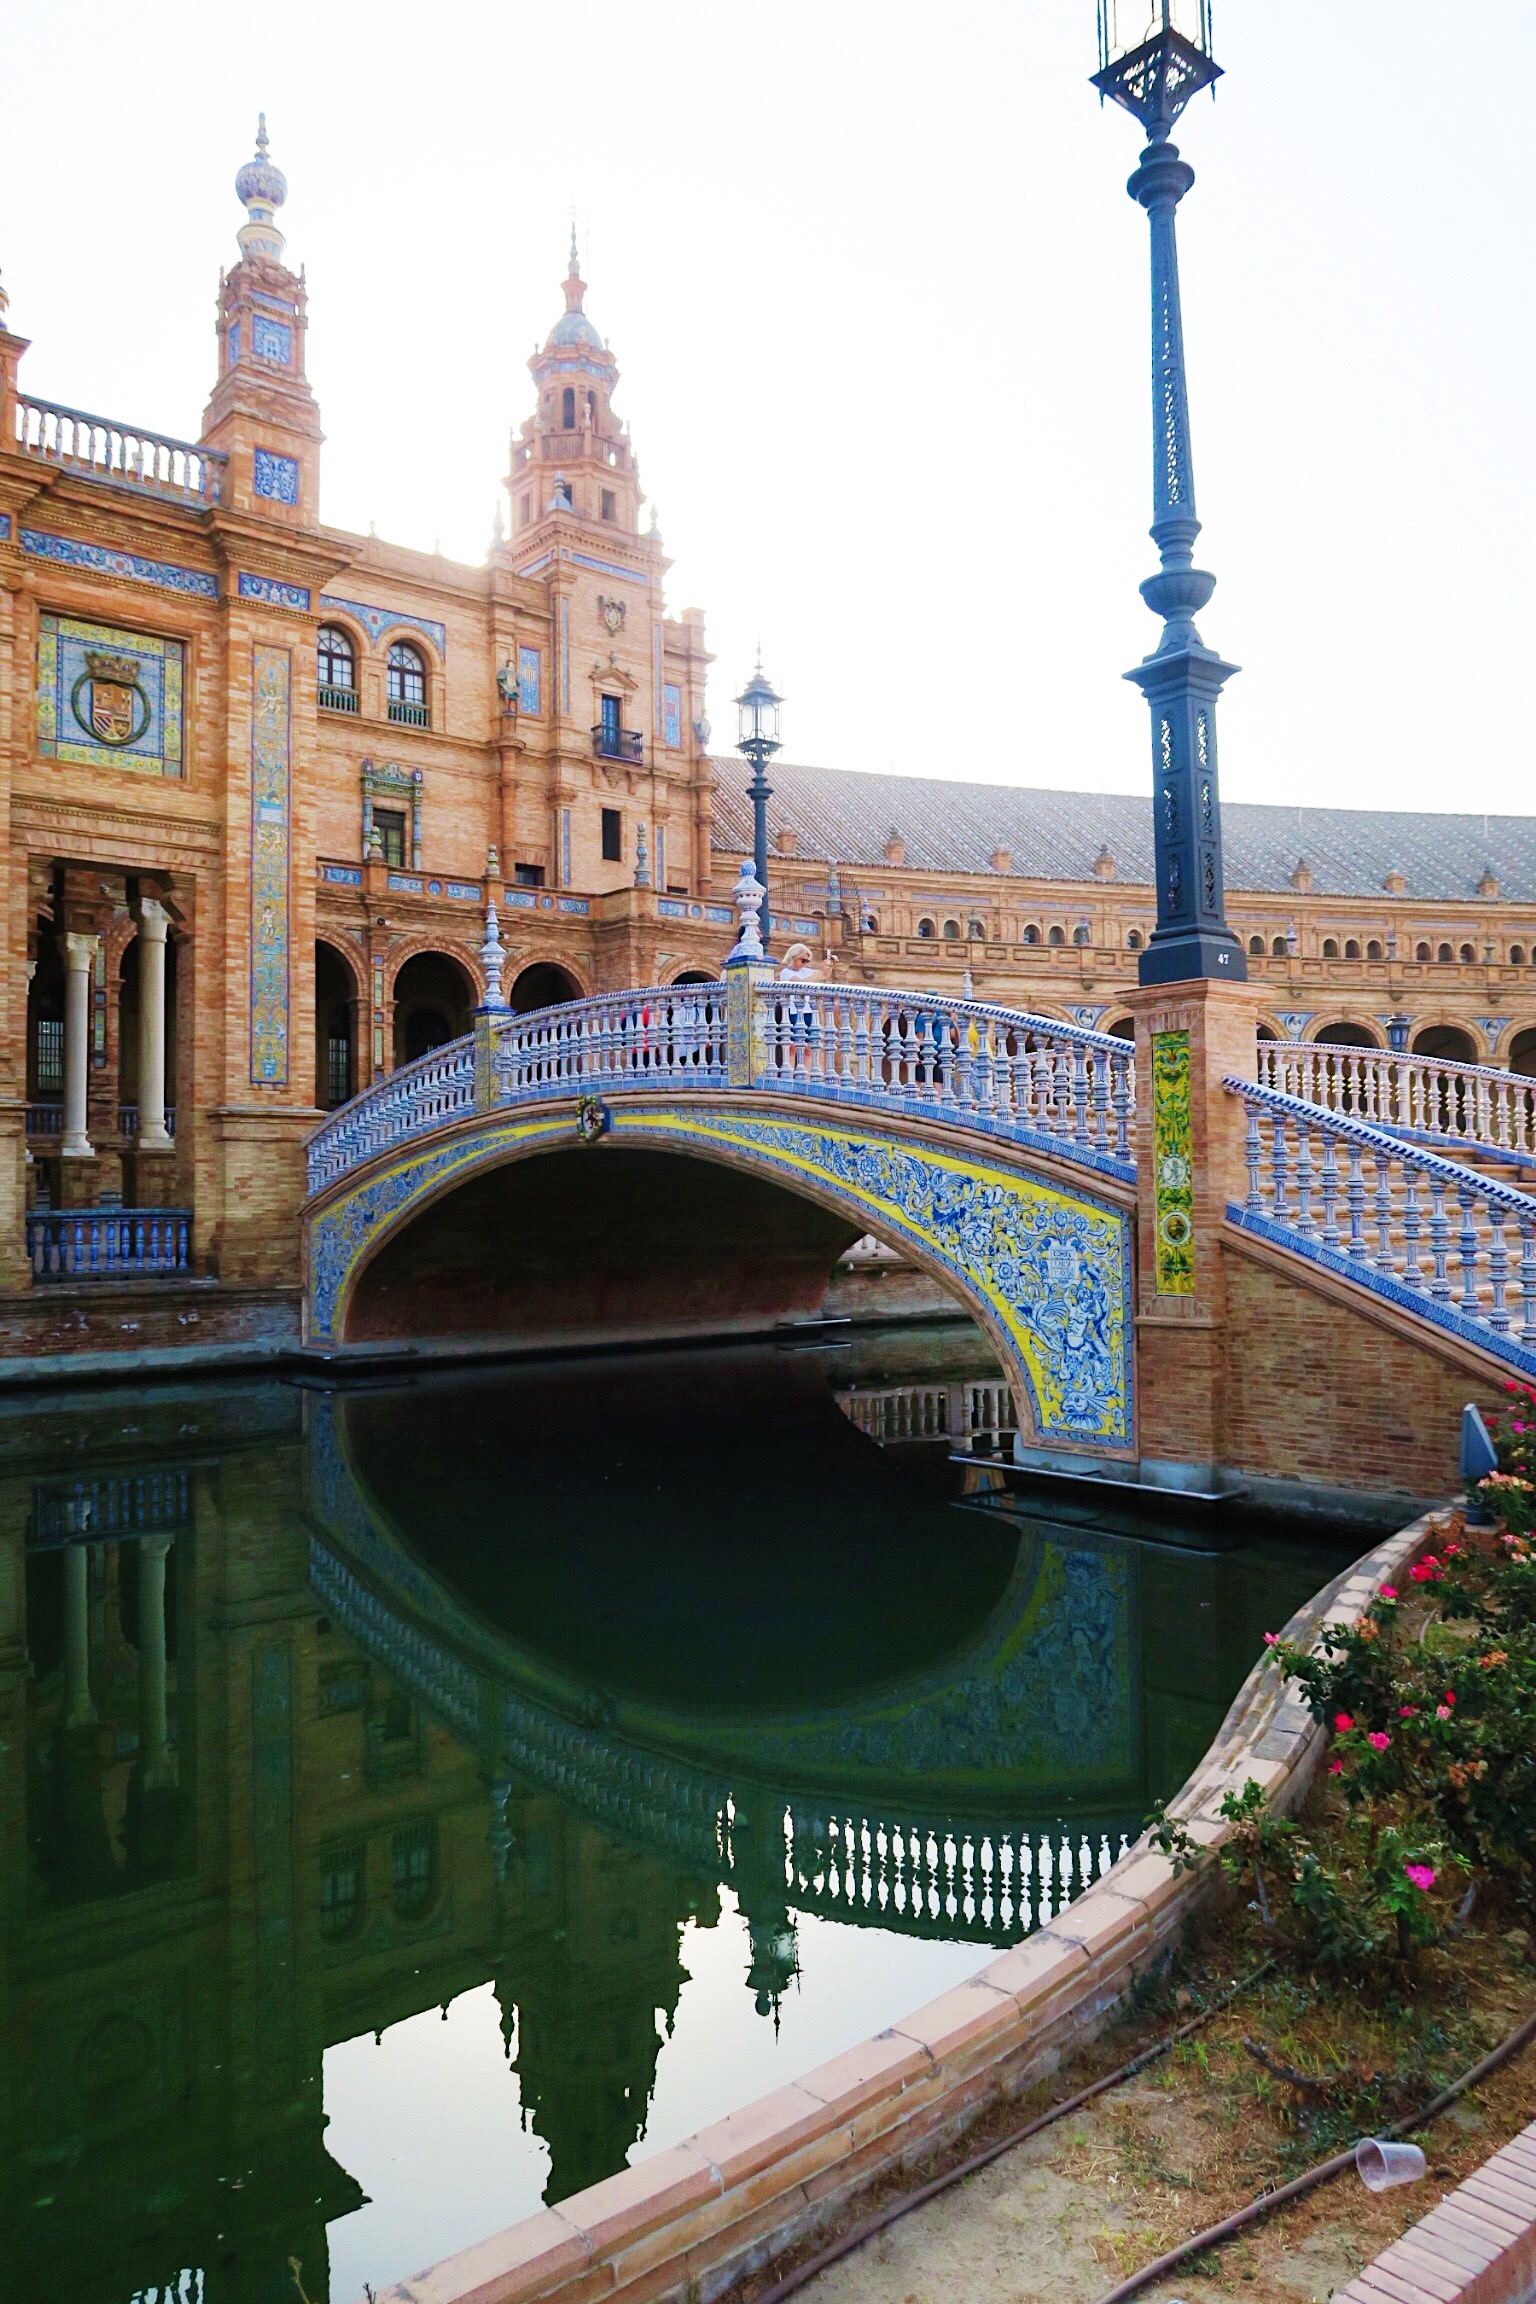 Beautiful portrait Plaza de espana in Seville from Sincerely Yours Susie blog. Photo credit Susie Cormack Bruce